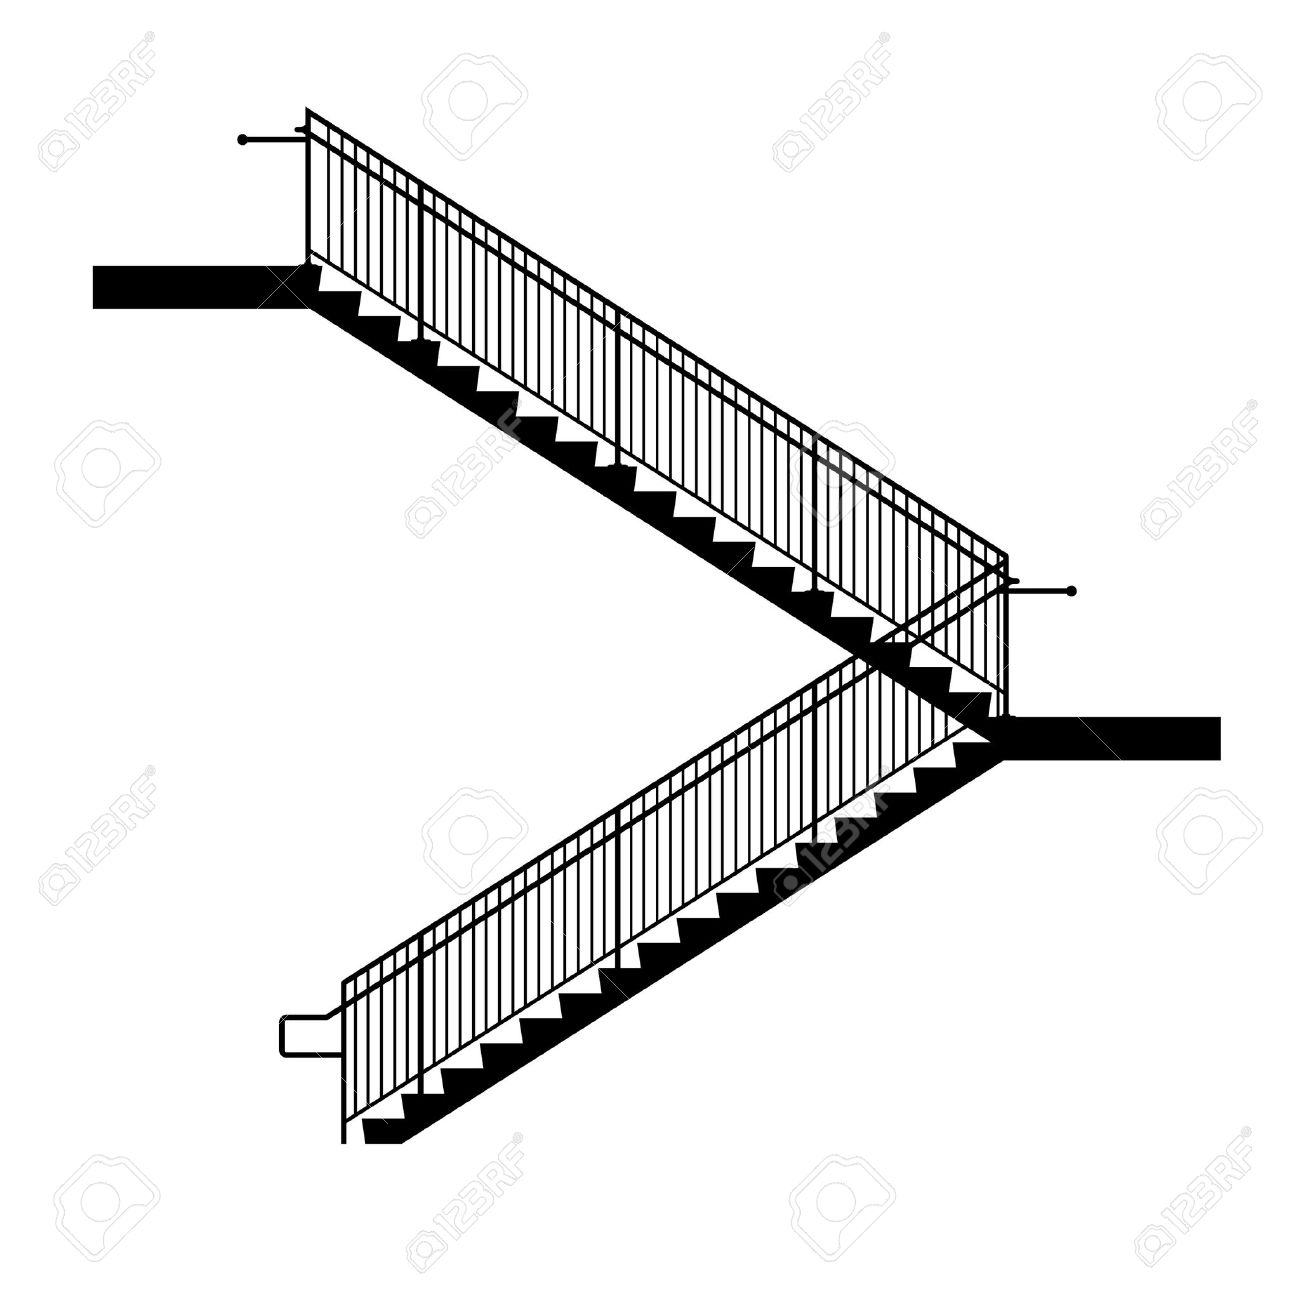 stairs royalty free cliparts vectors and stock illustration image rh 123rf com stairs clipart black and white grand staircase clipart